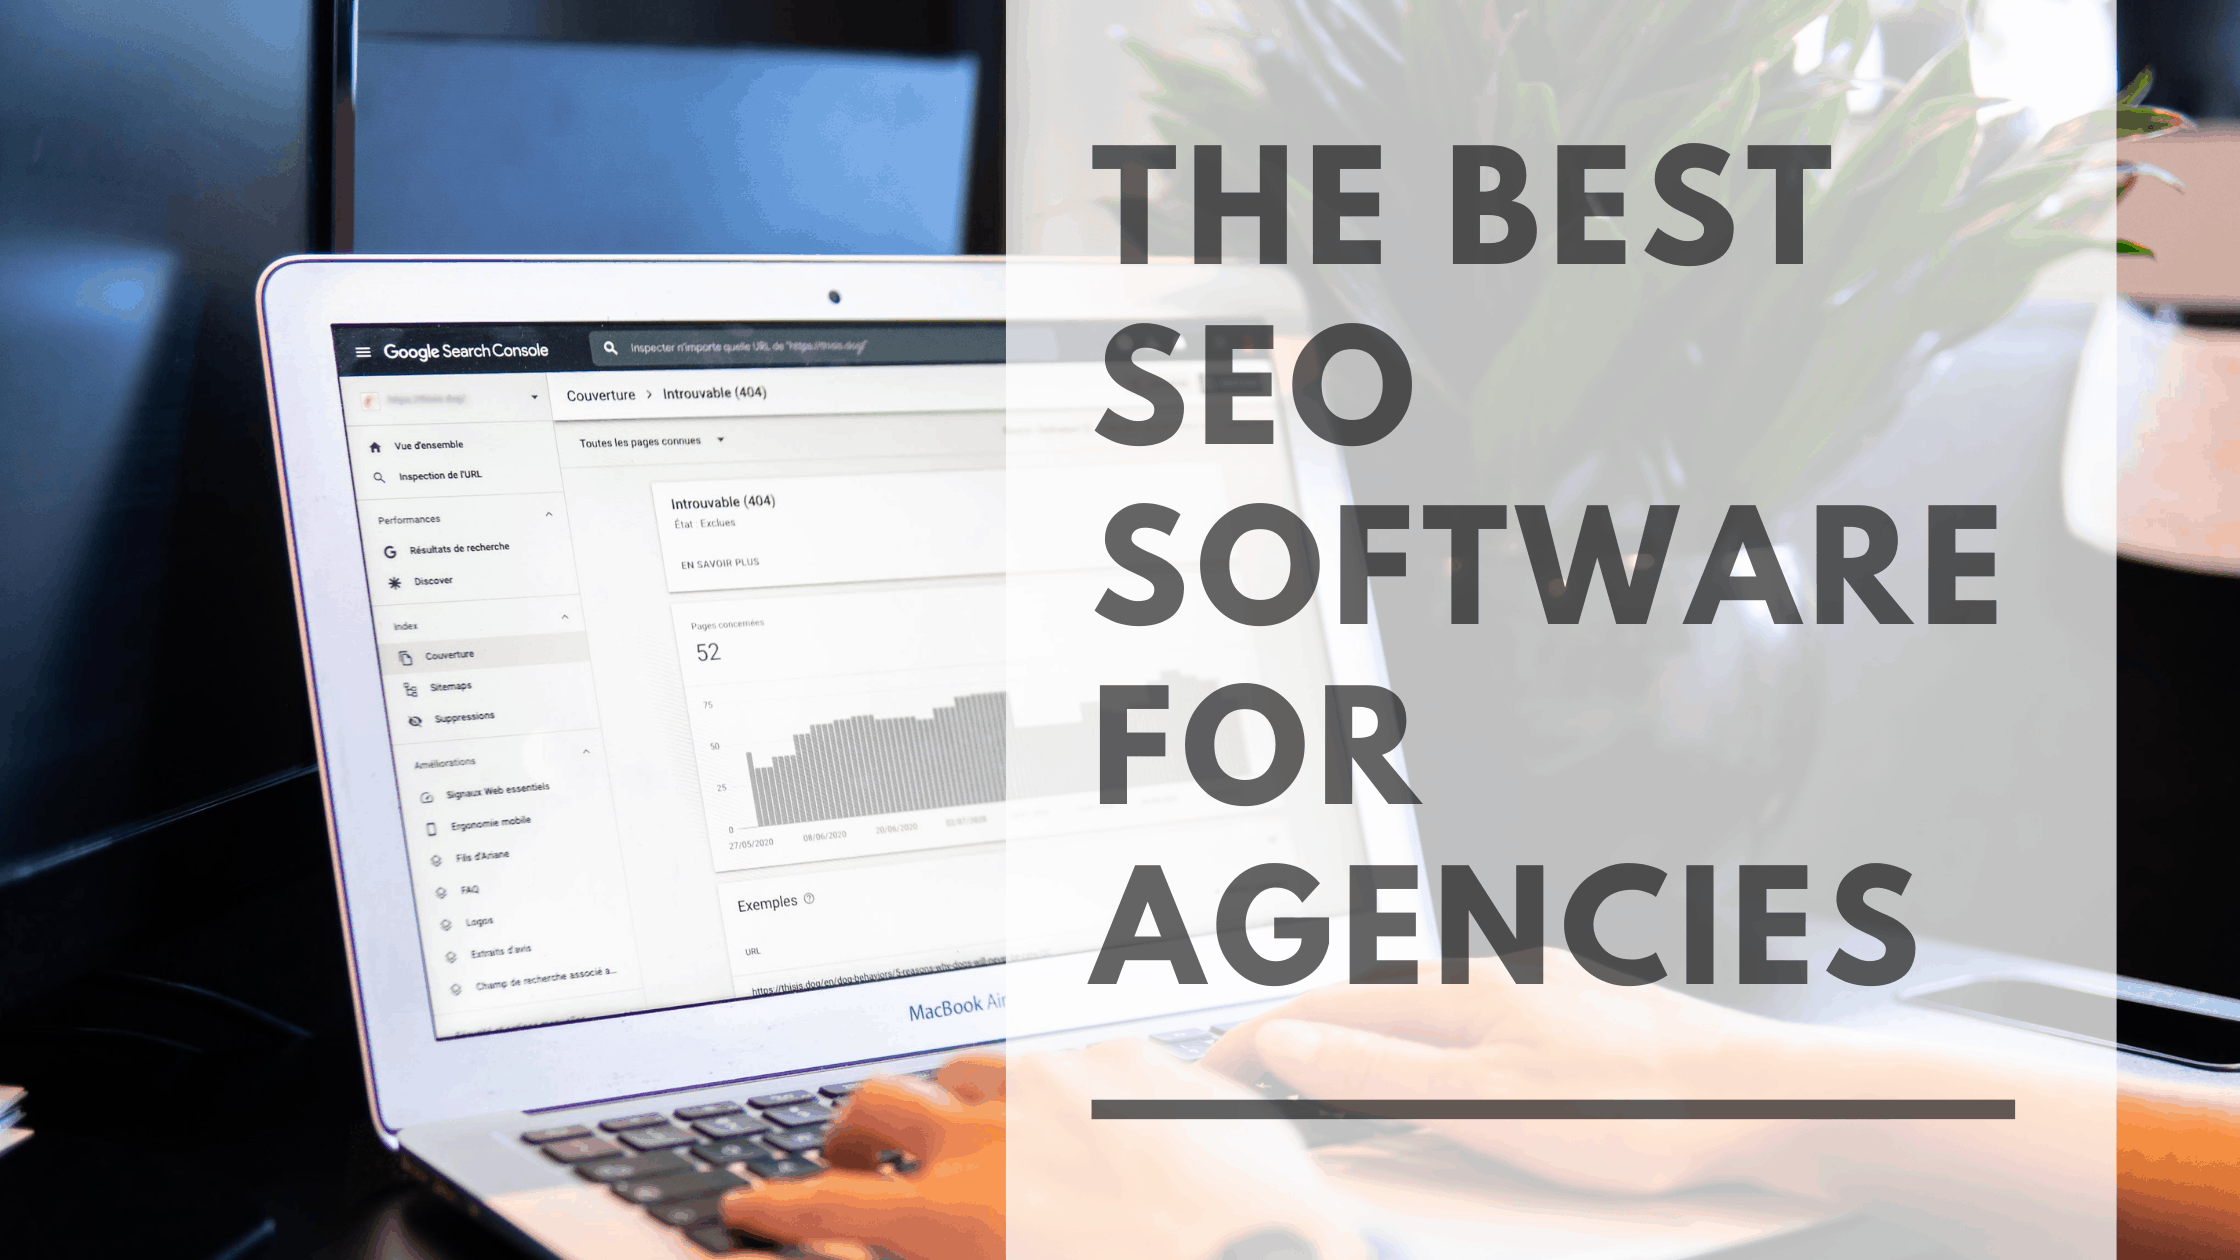 The Best SEO Software for Agencies